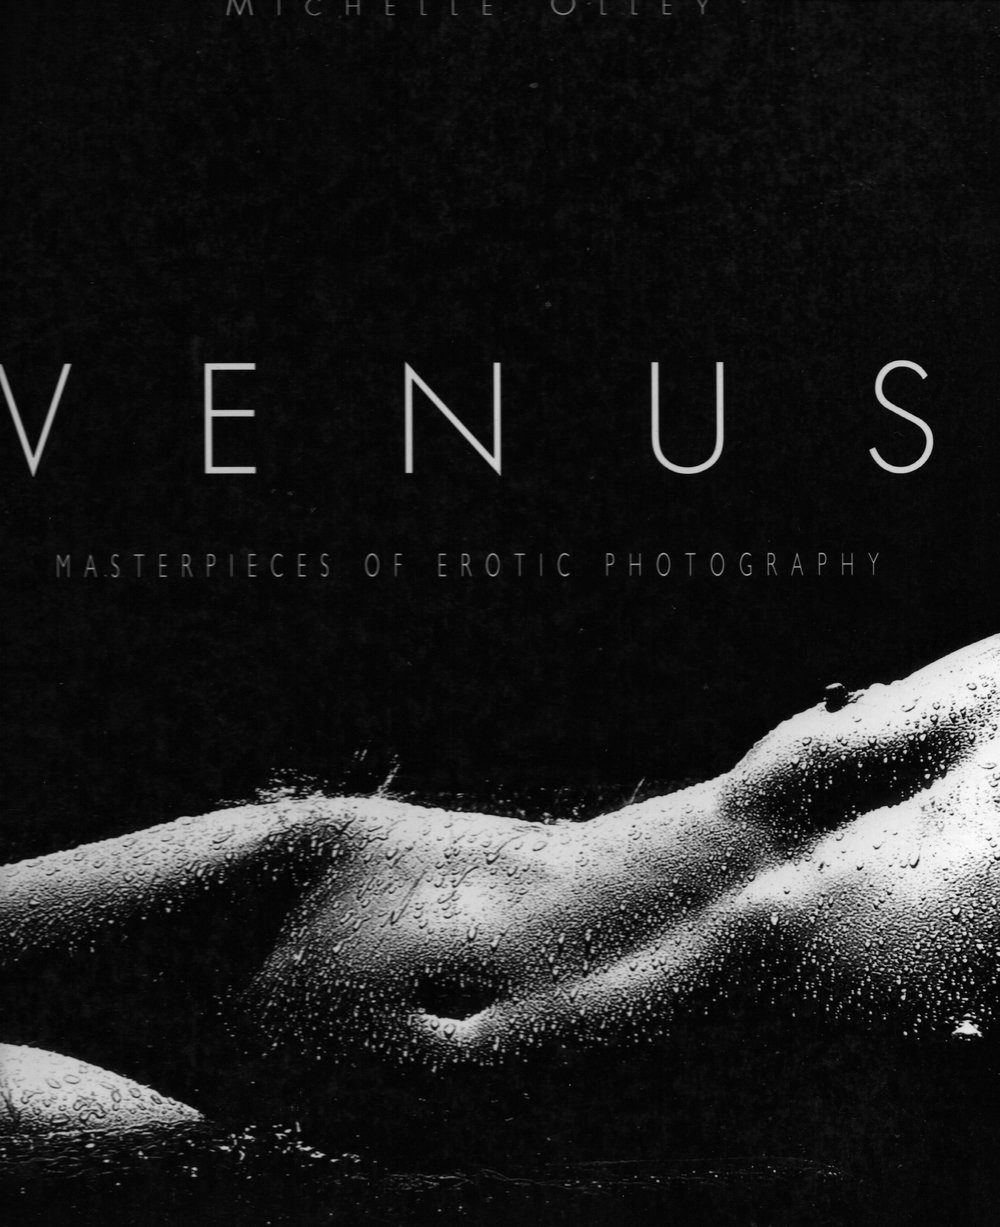 Marco Sanges Book - Venus 1.jpeg